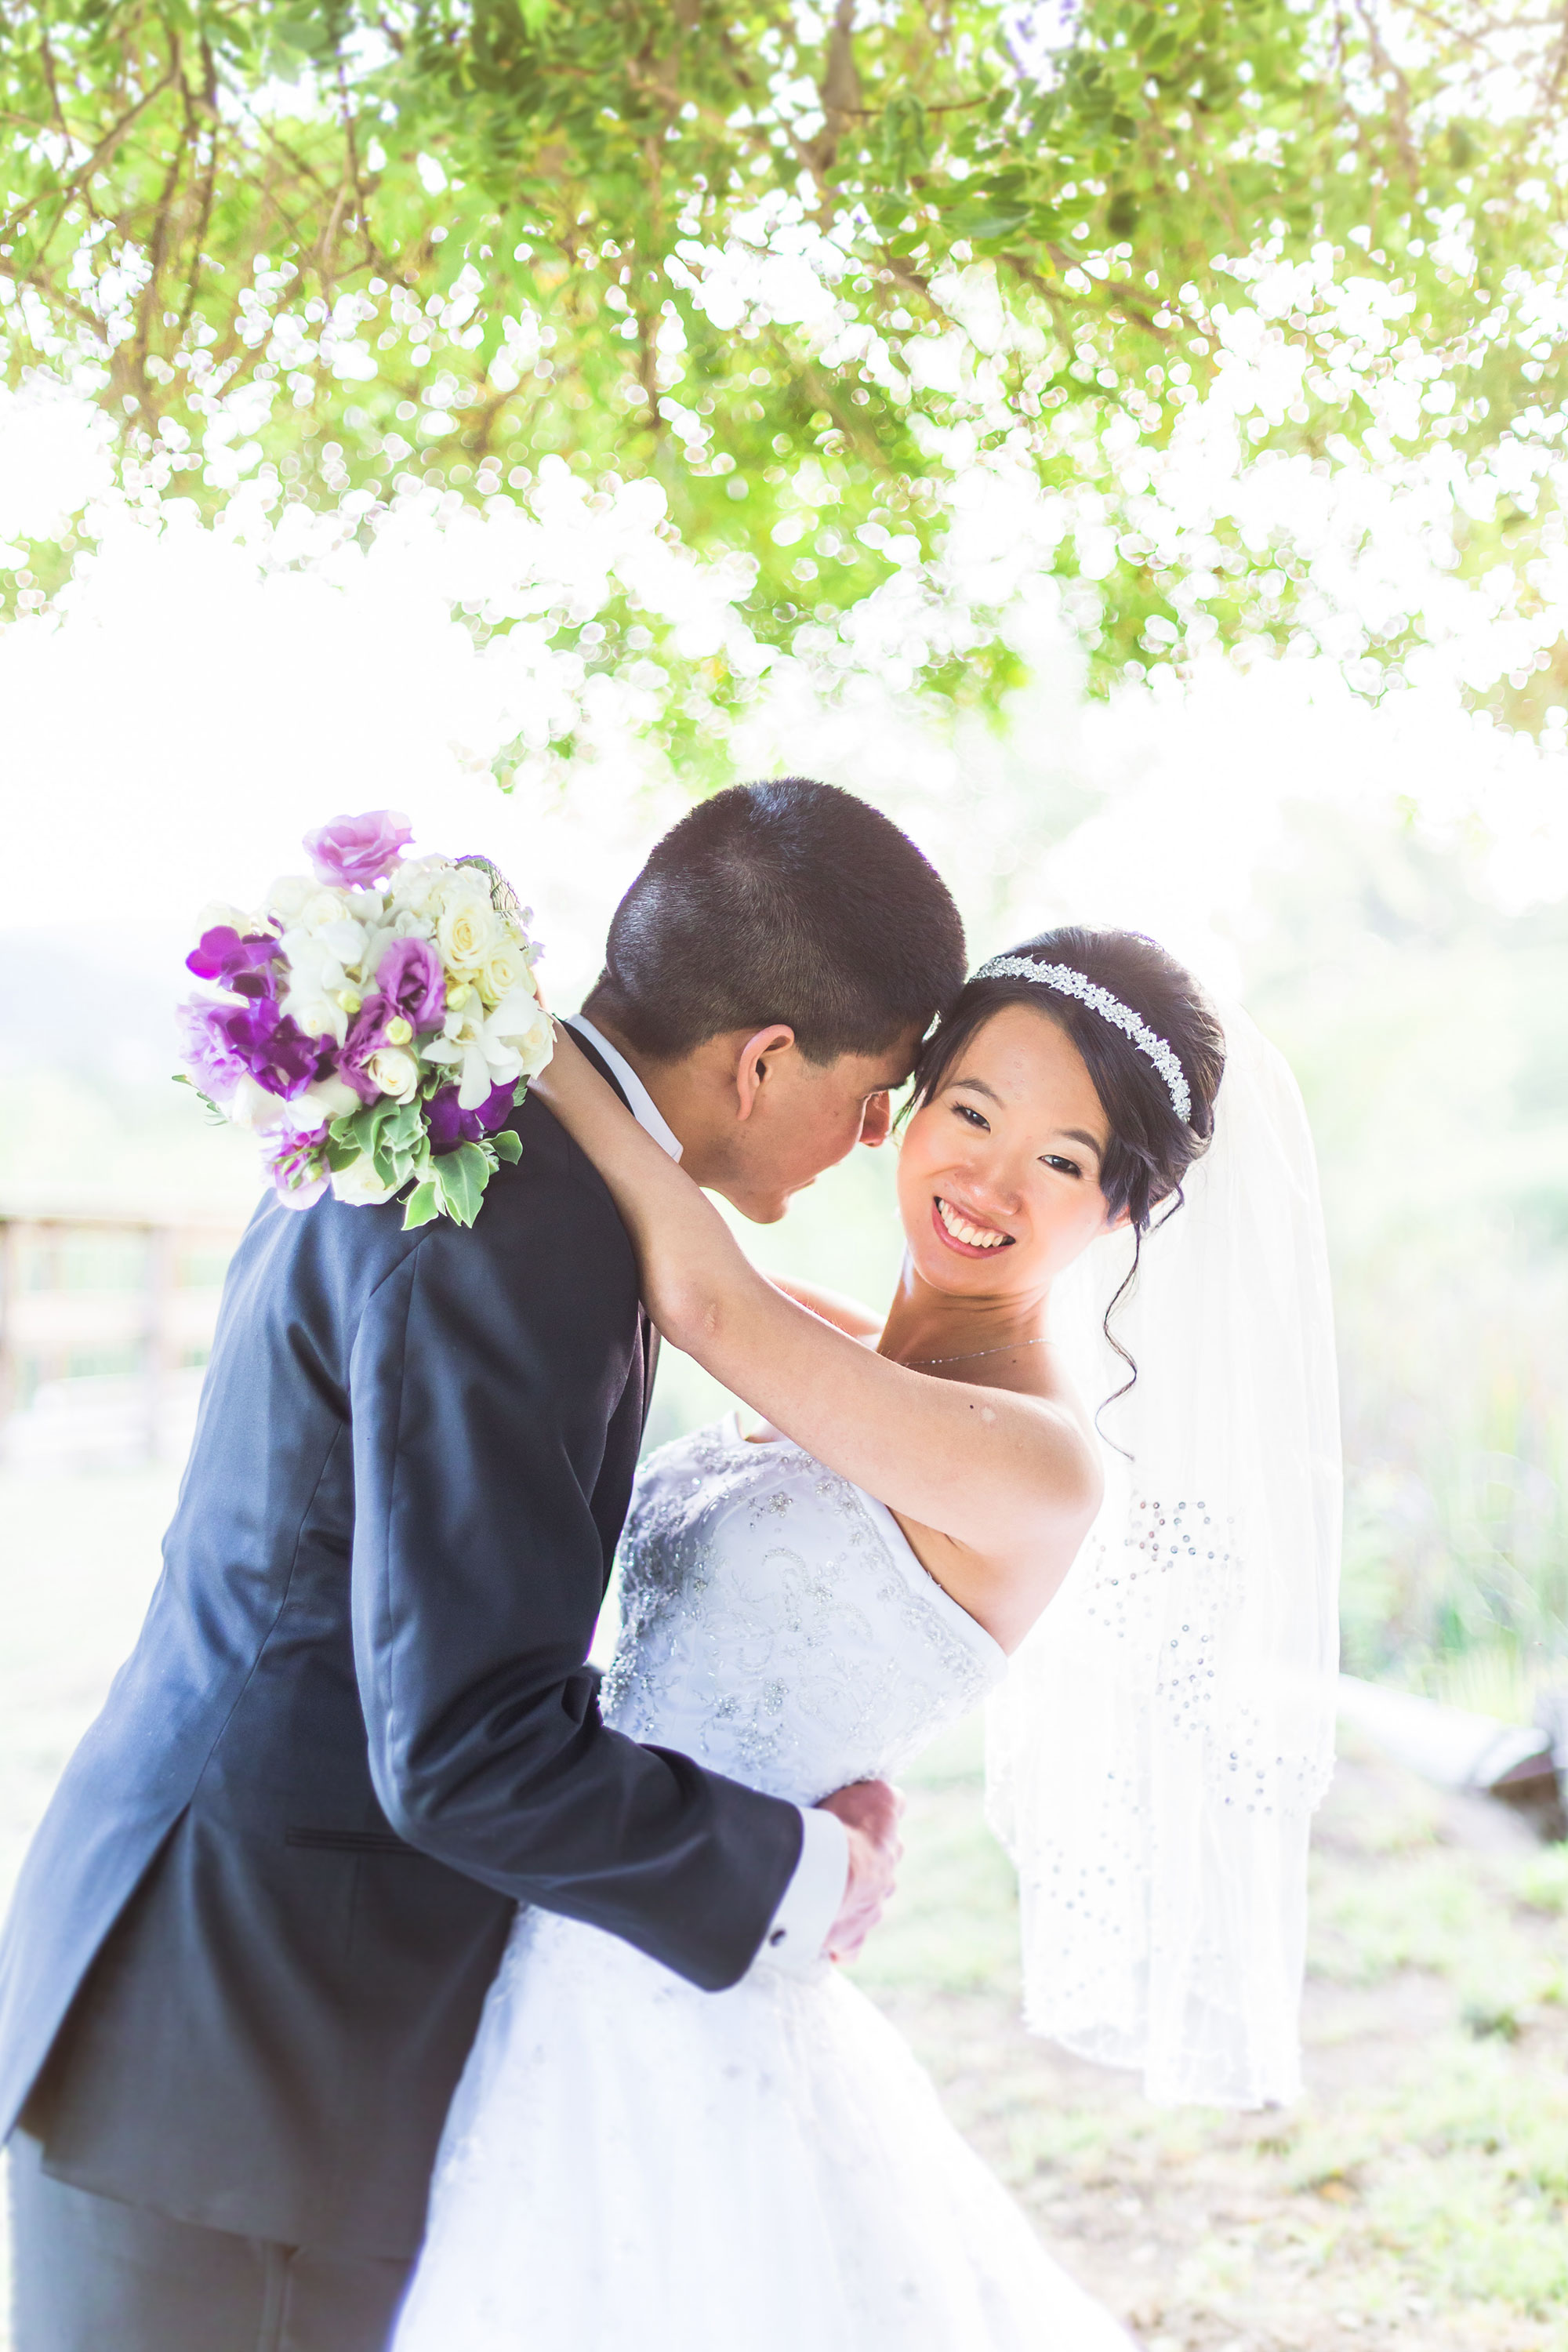 Portsmouth Wedding Photographer | Stephen Grant Photography